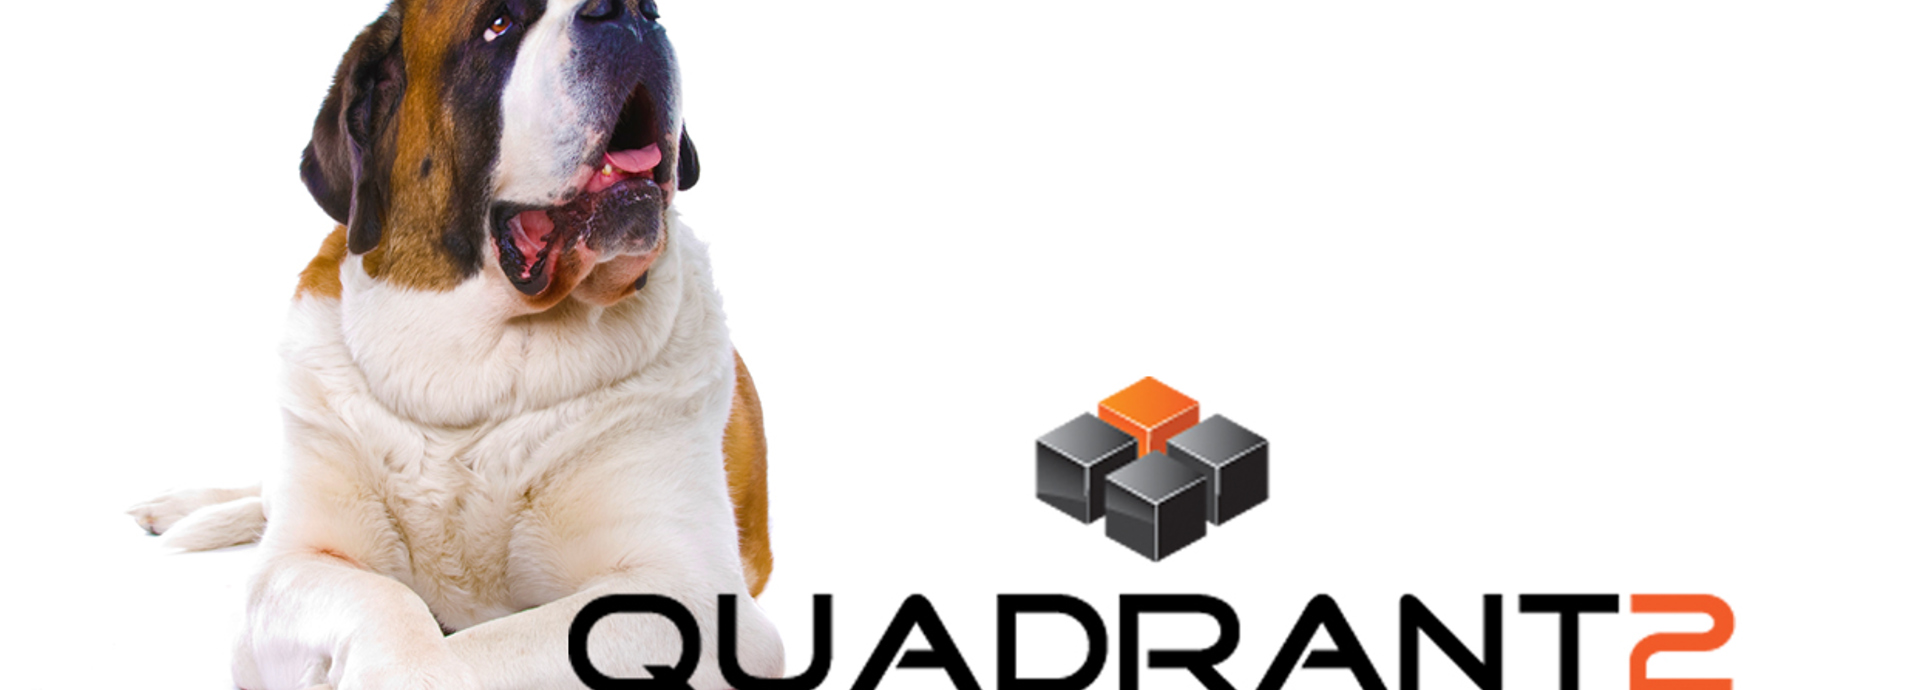 Quadrant dog logo